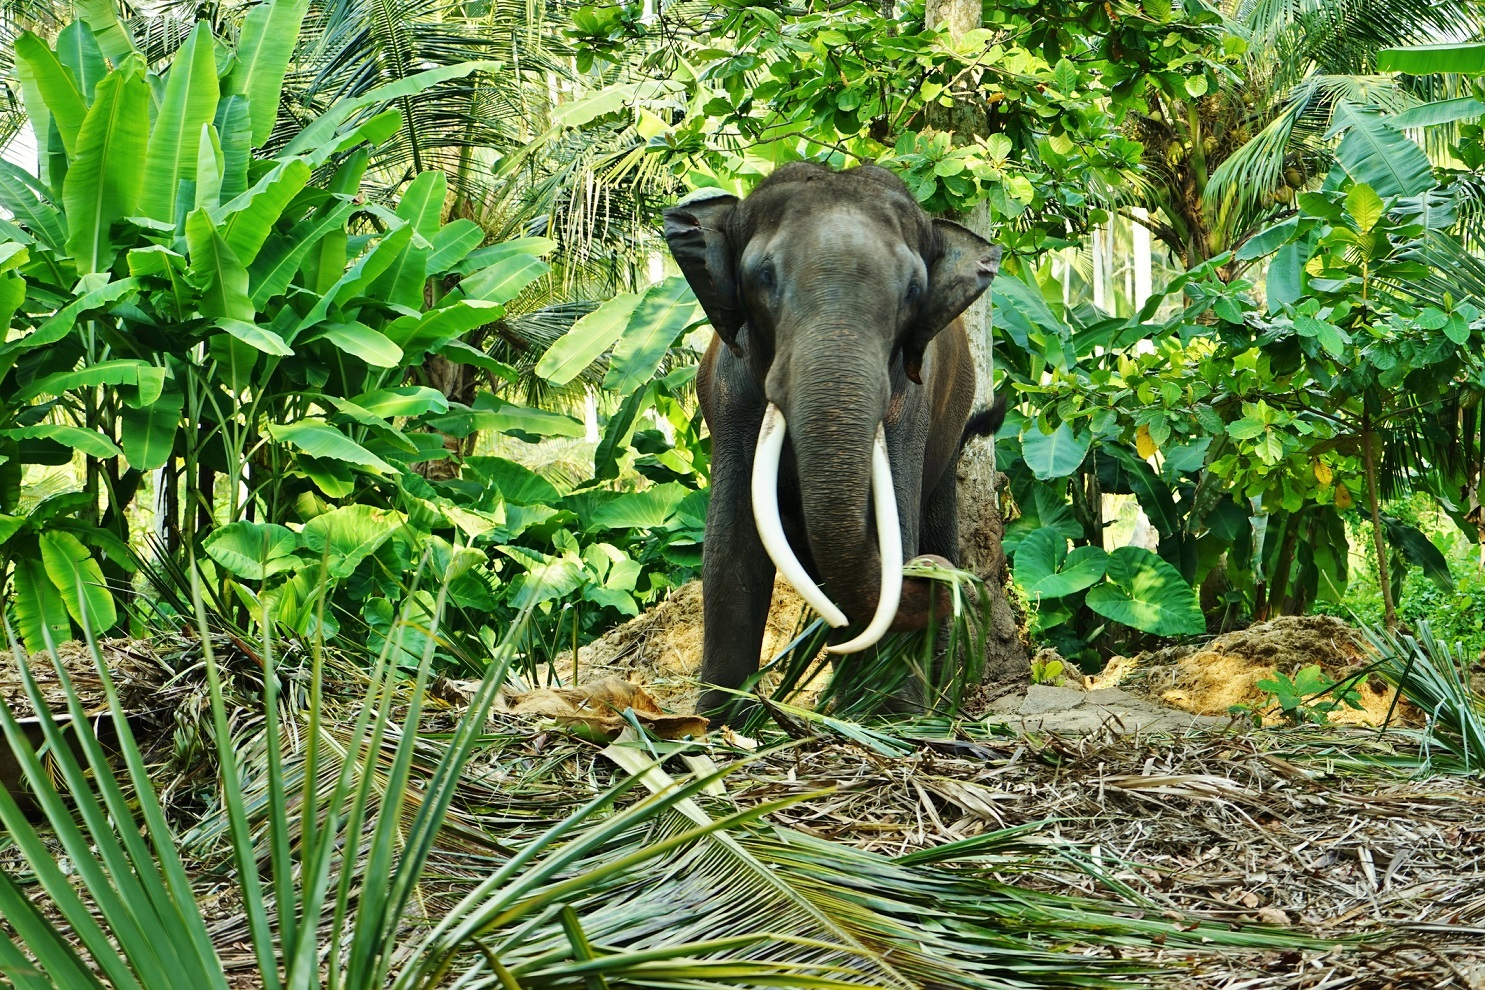 Adult male elephant with tusks in the forest in Sri Lanka